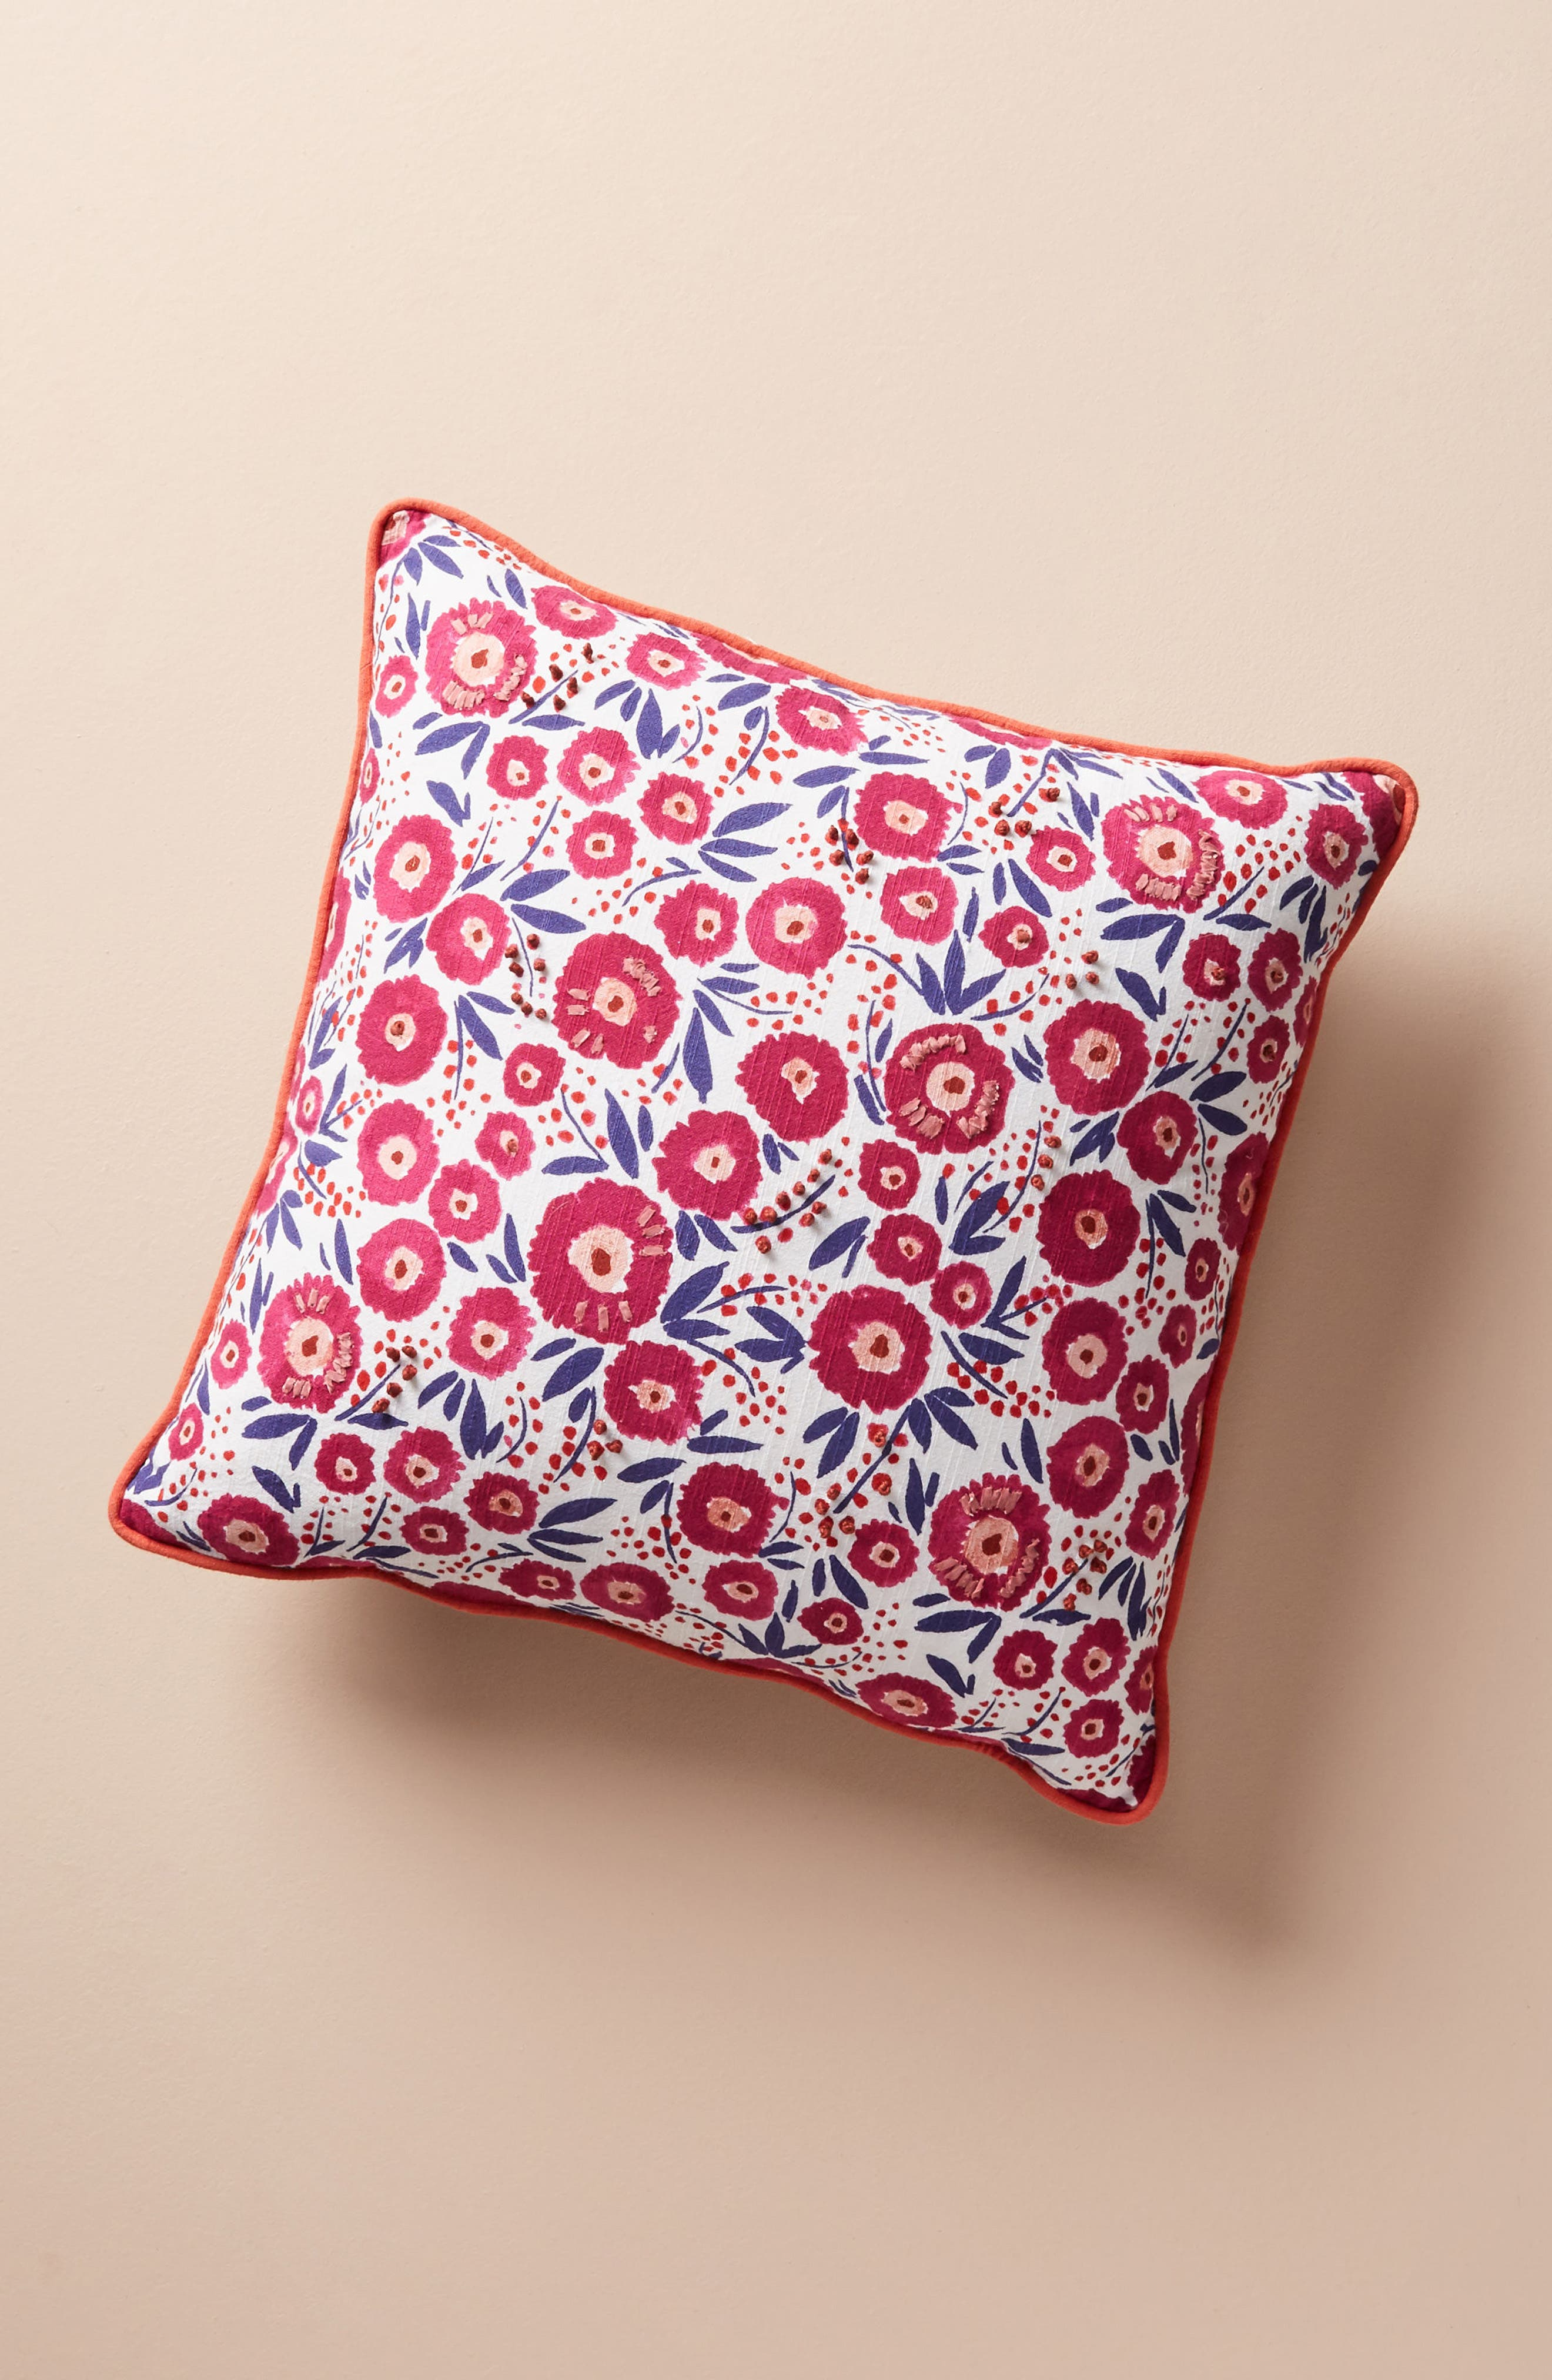 Main Image - Anthropologie Painted Poppies Accent Pillow